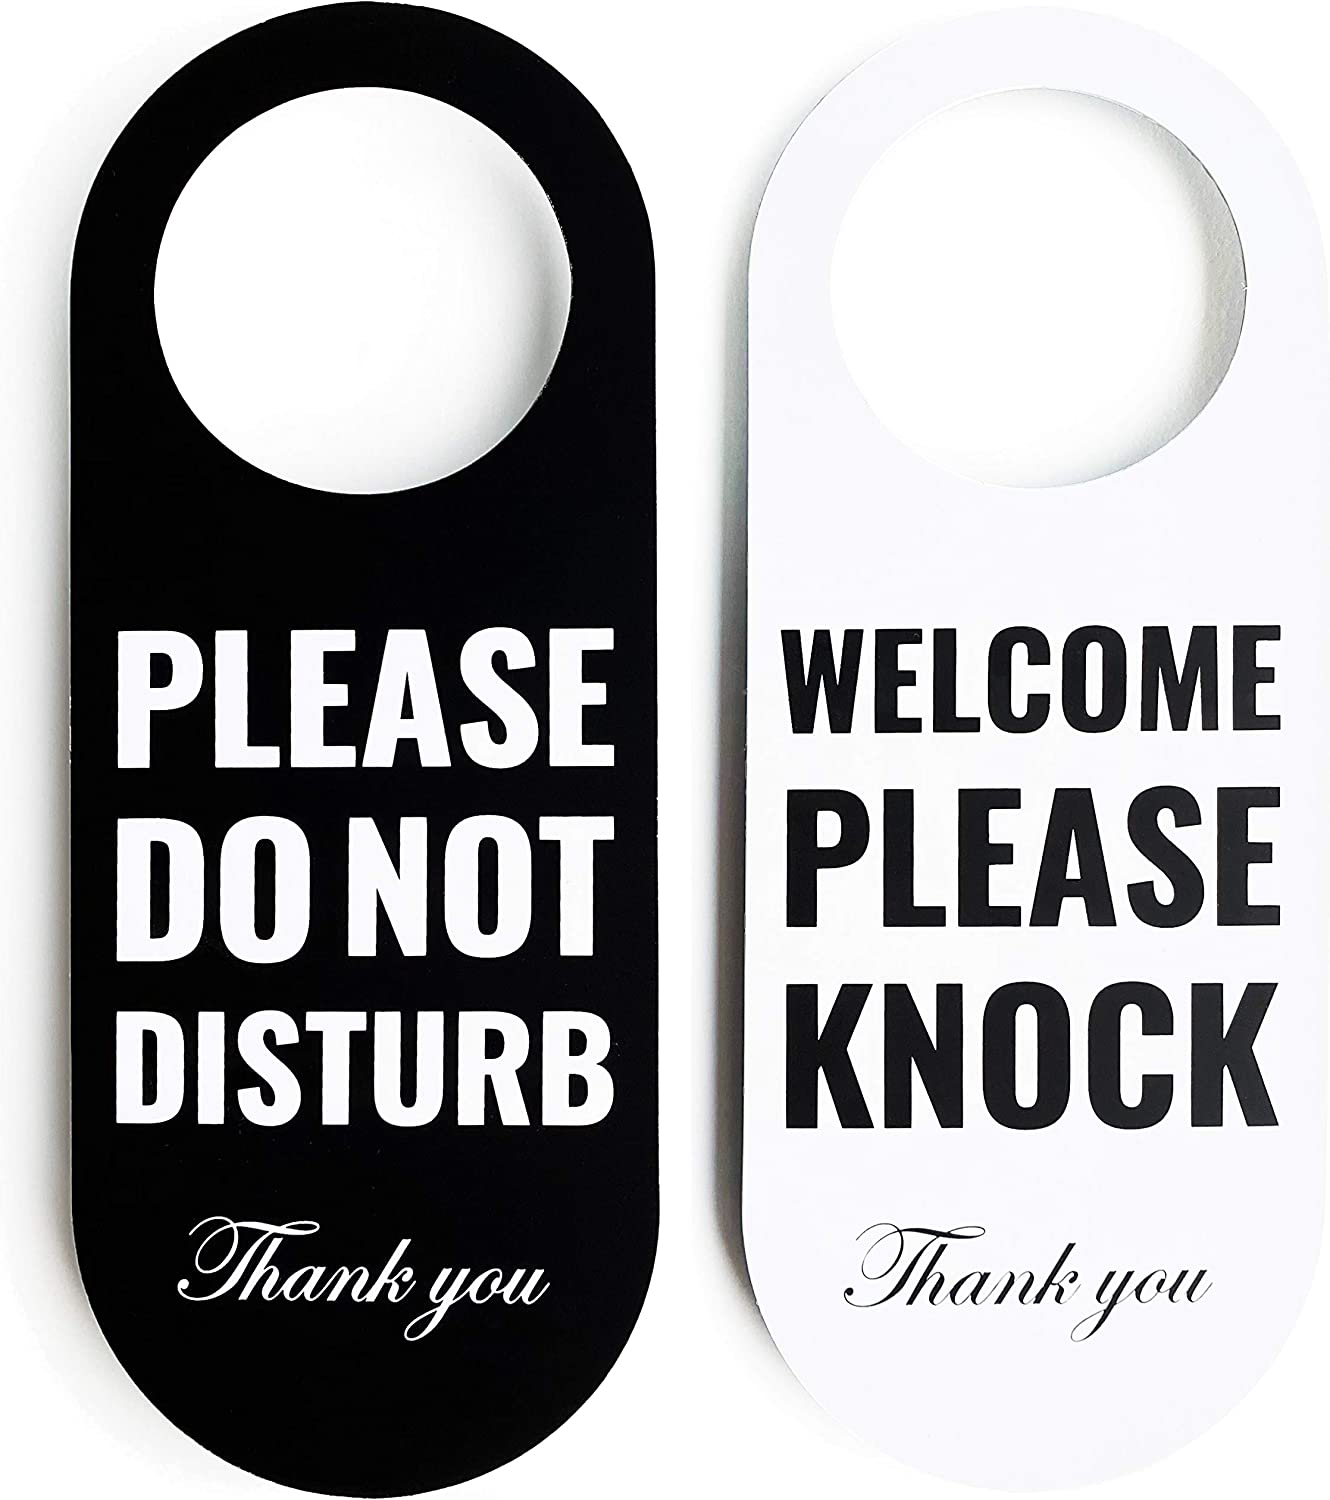 Do Not Disturb Door Hanger Sign 2 Pack (Black/White Double Sided) Please Do Not Disturb on Front and Welcome Please Knock on Back Side, for Office Home Clinic Dorm Online Class and Meeting Session